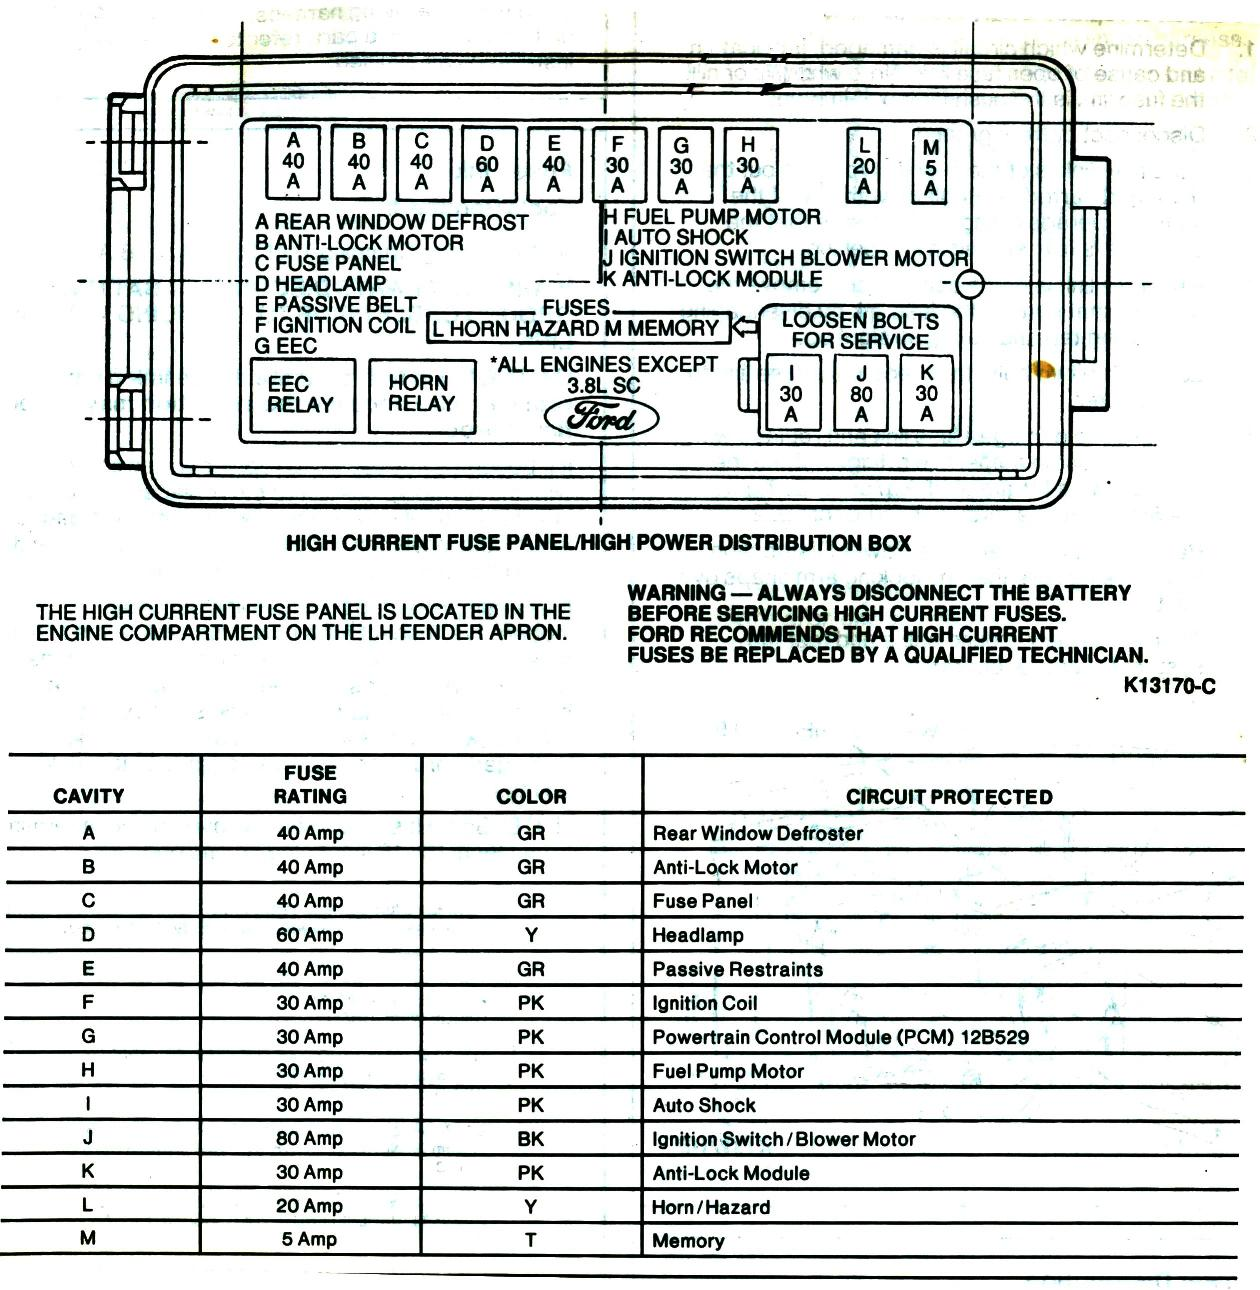 dist box under dash fuse box diagram? 96 ford taurus fuse box diagram at gsmx.co